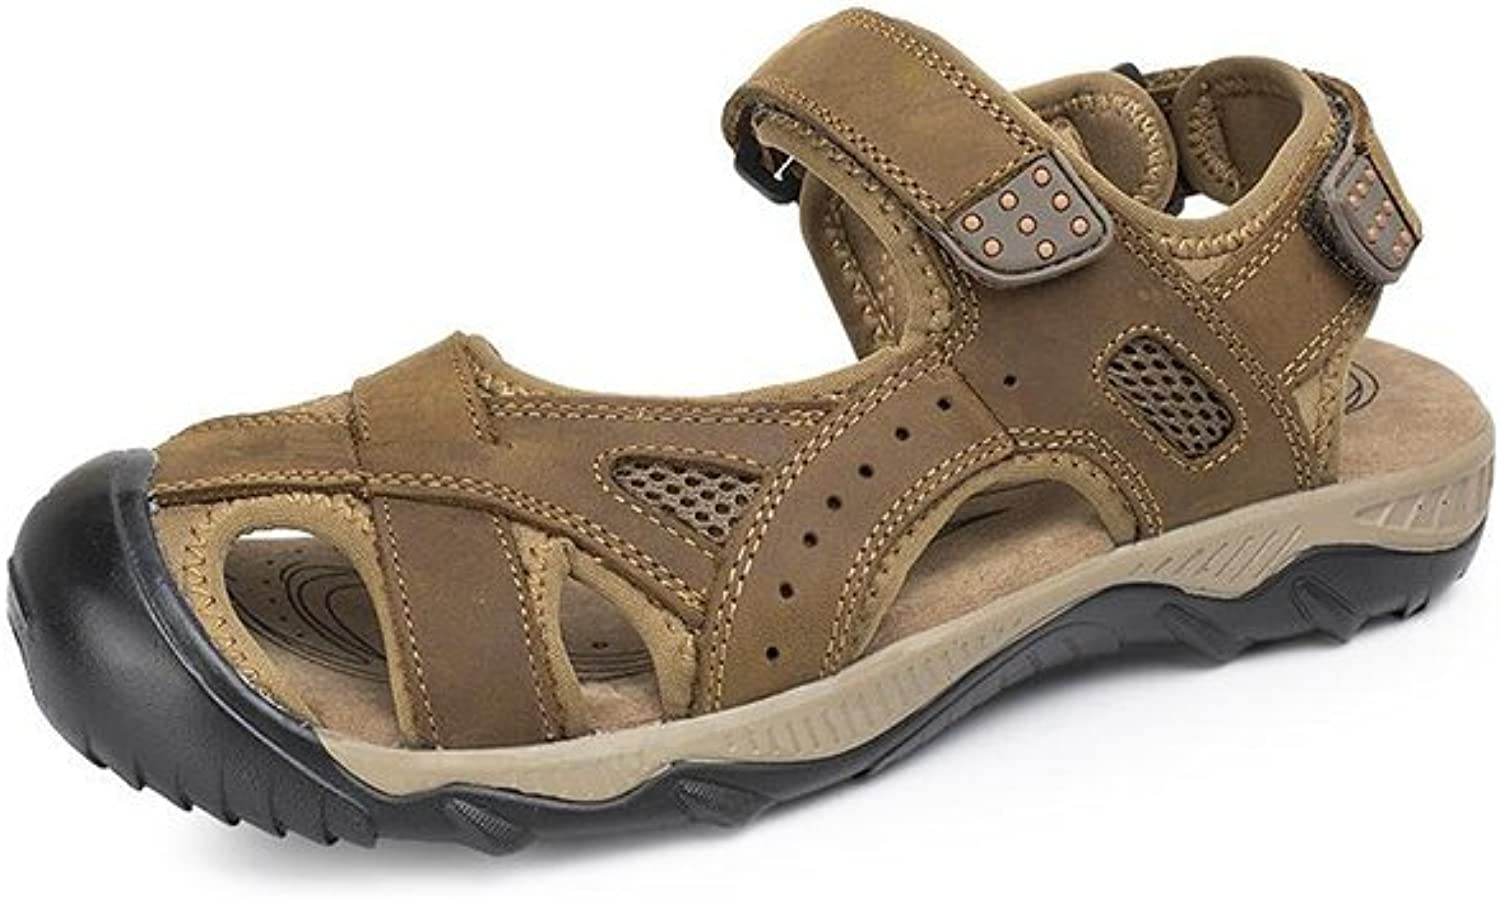 MuMa Summer Sandals, Men's Leather Casual Non-Slip Sandals (color   Light Brown, Size   EU41 UK7.5-8 CN42)